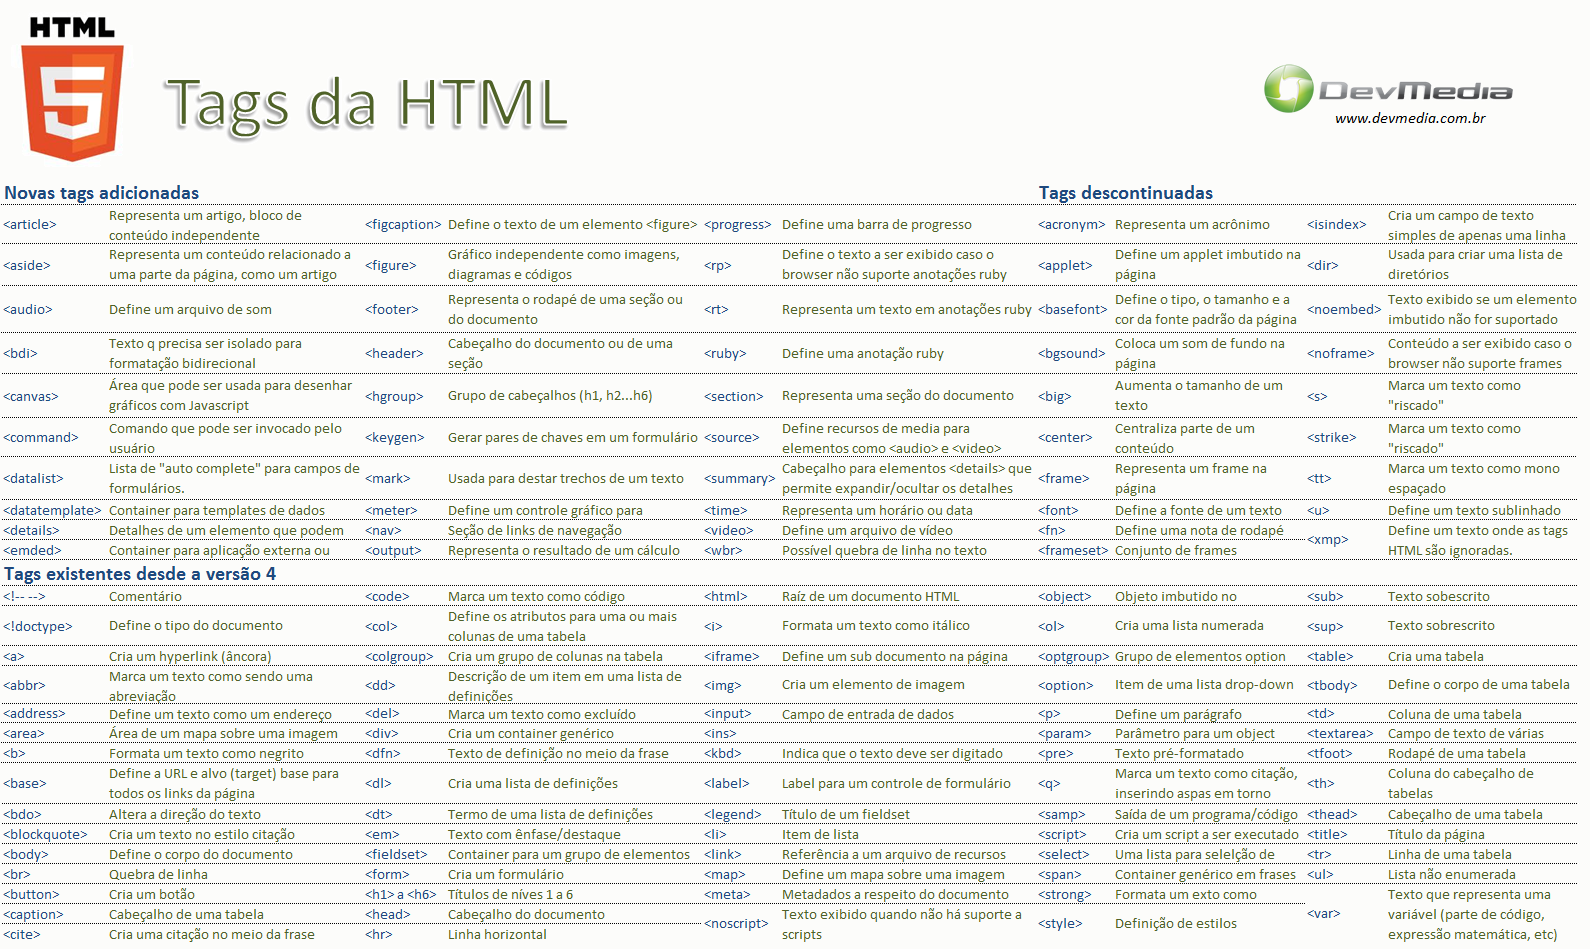 Click on the image above to view the jpg image for html5 cheat sheet wallpaper in its full resolution